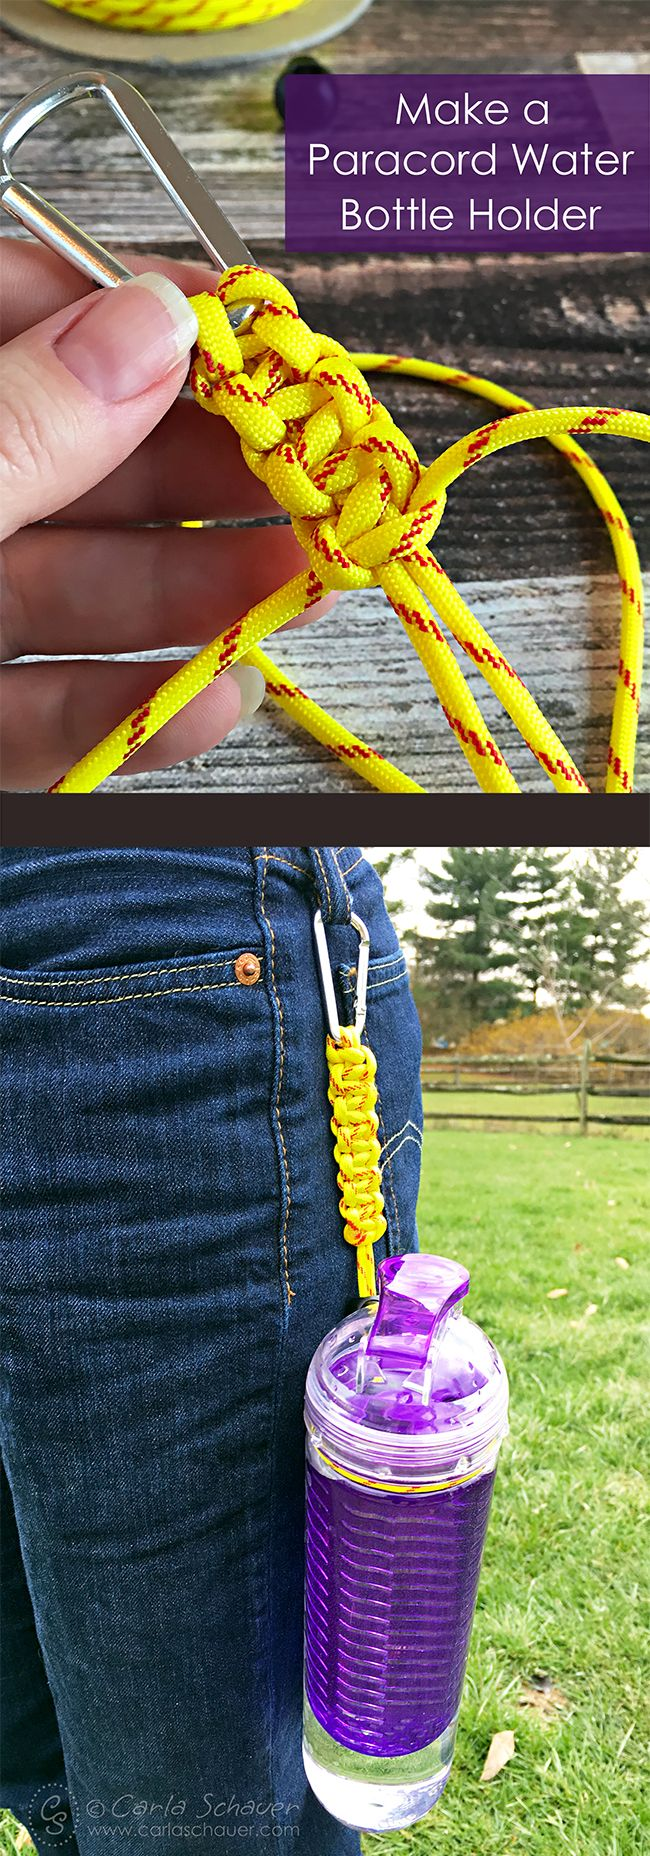 Make a paracord water bottle holder. Use fastpitch paracord for softball, or coordinate with team colors for other sports. Cute and useful! | Tutorial from Carla Schauer Designs (Camping Hacks With Kids)